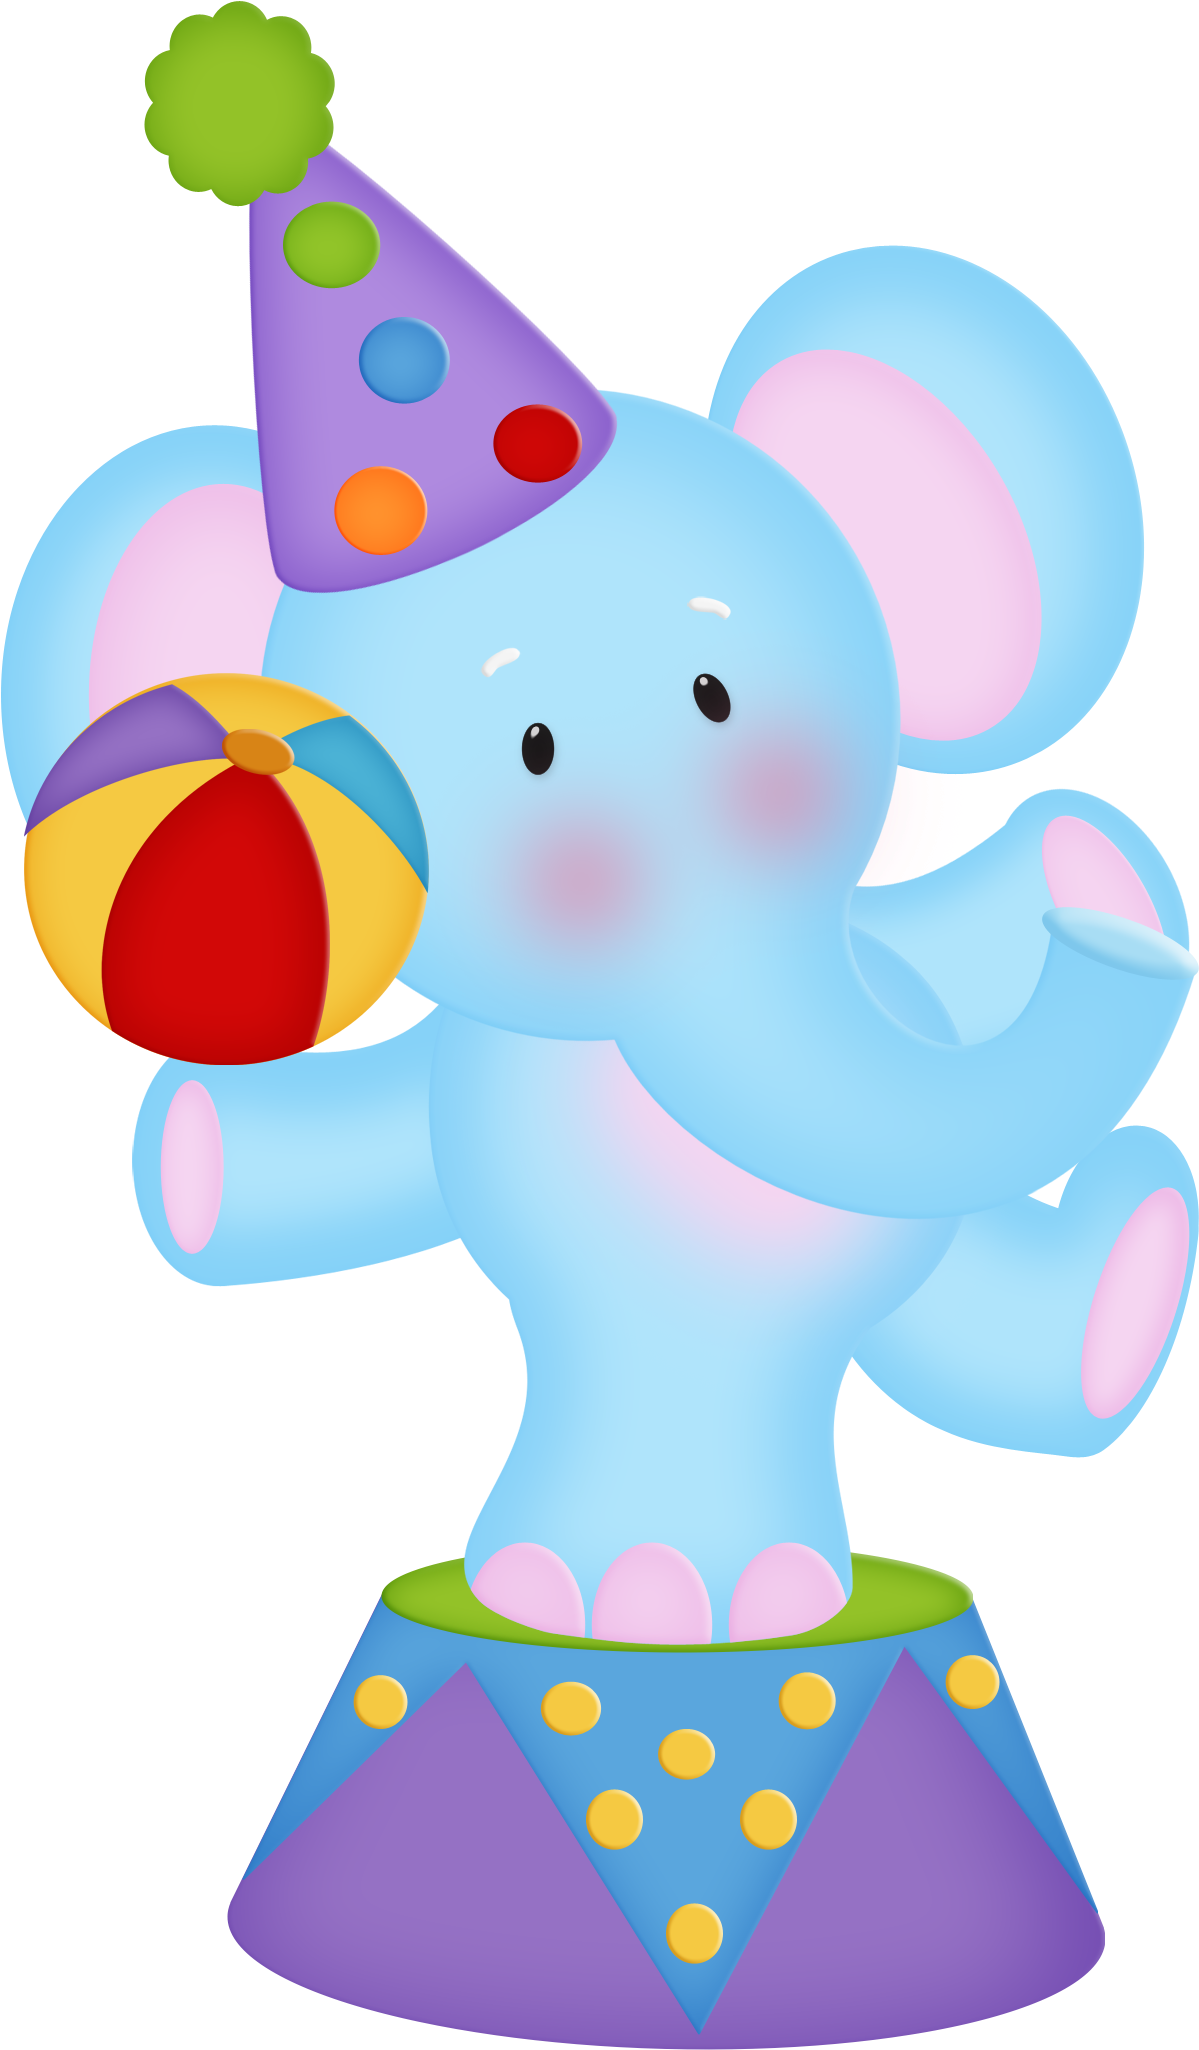 Elephant Png Animado – You can download free elephant png images with transparent backgrounds from the largest collection on pngtree.